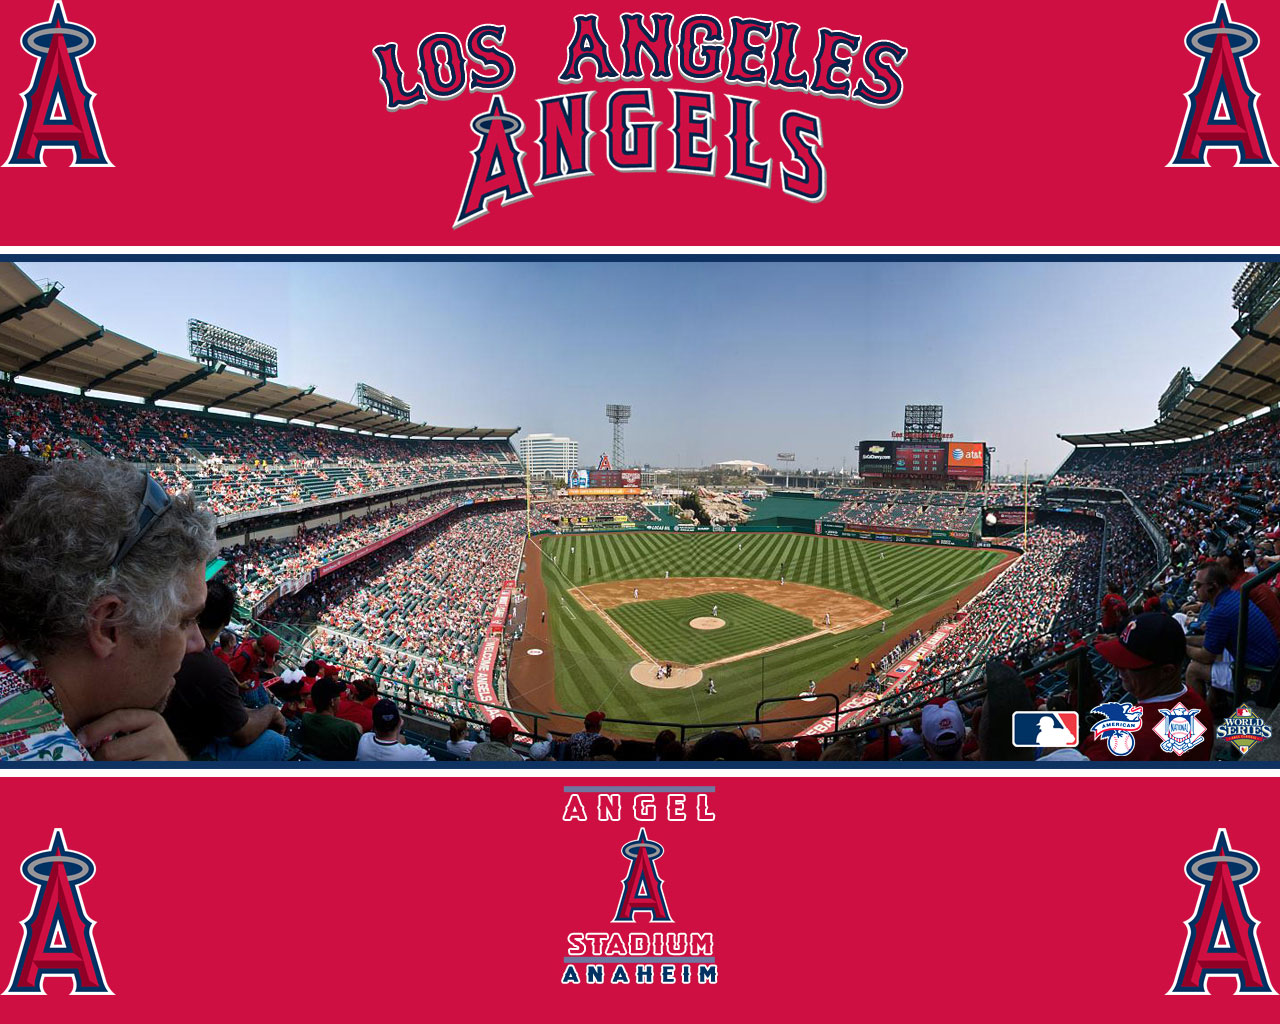 Los Angeles Angels Wallpapers Browser Themes amp More 1280x1024